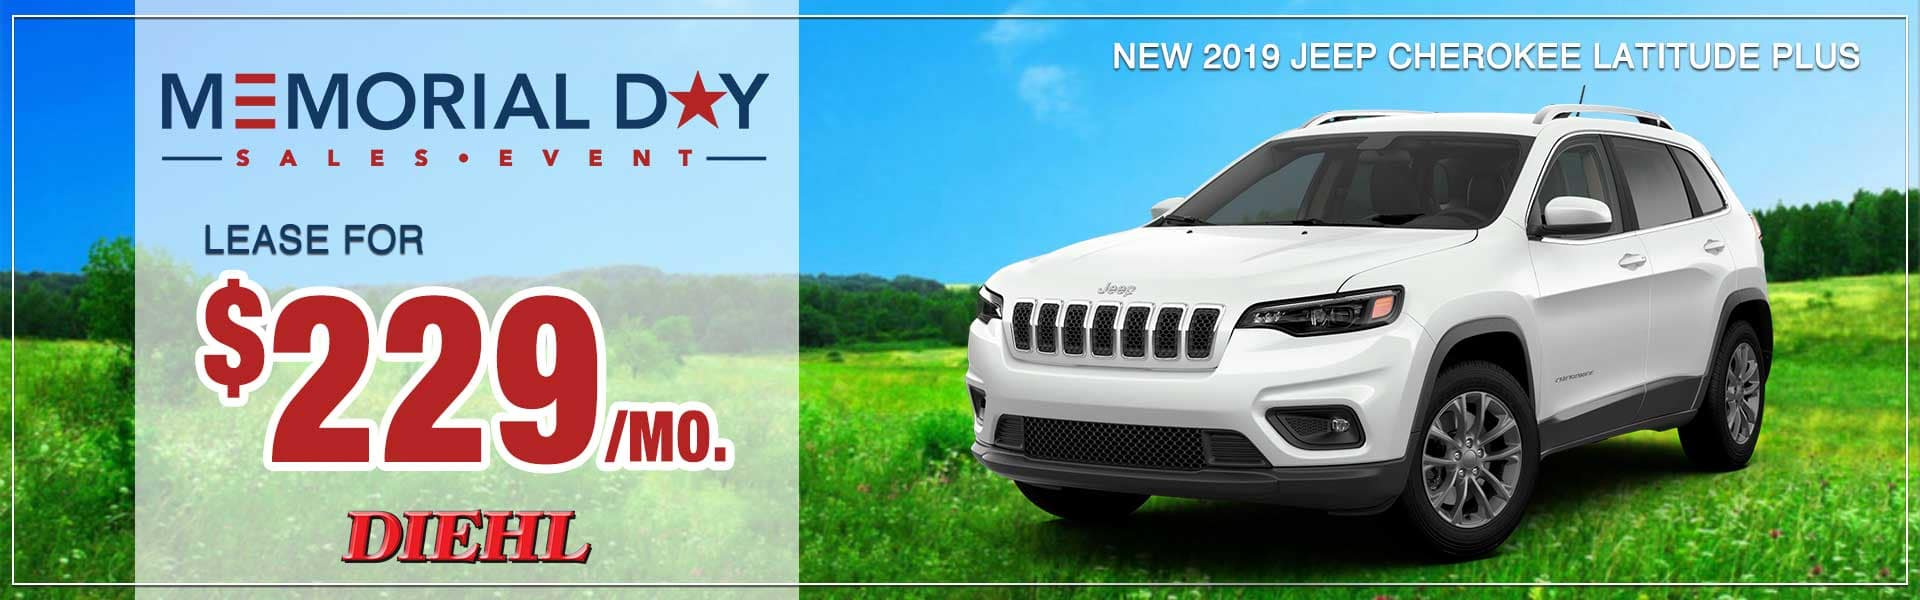 SJ19128-2019-jeep-cherokee-latitude-plus-600x400 Jeep celebration event Chrysler Pacifica blockbuster sales event dodge performance days bigger things sales event Memorial Day sales event Diehl auto Salem Ohio new vehicle specials lease specials